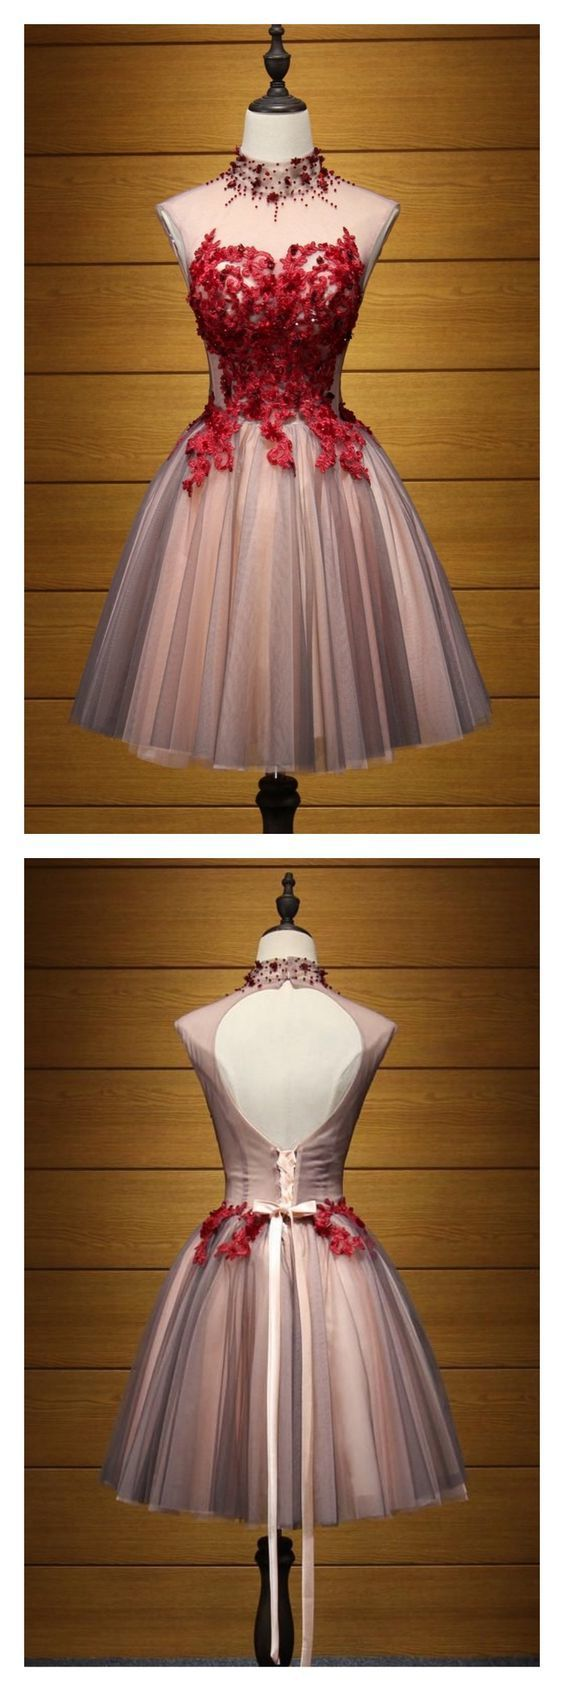 A Line HIgh Neck Tulle Homecoming Dresses with Applique Party Dresses Short Prom